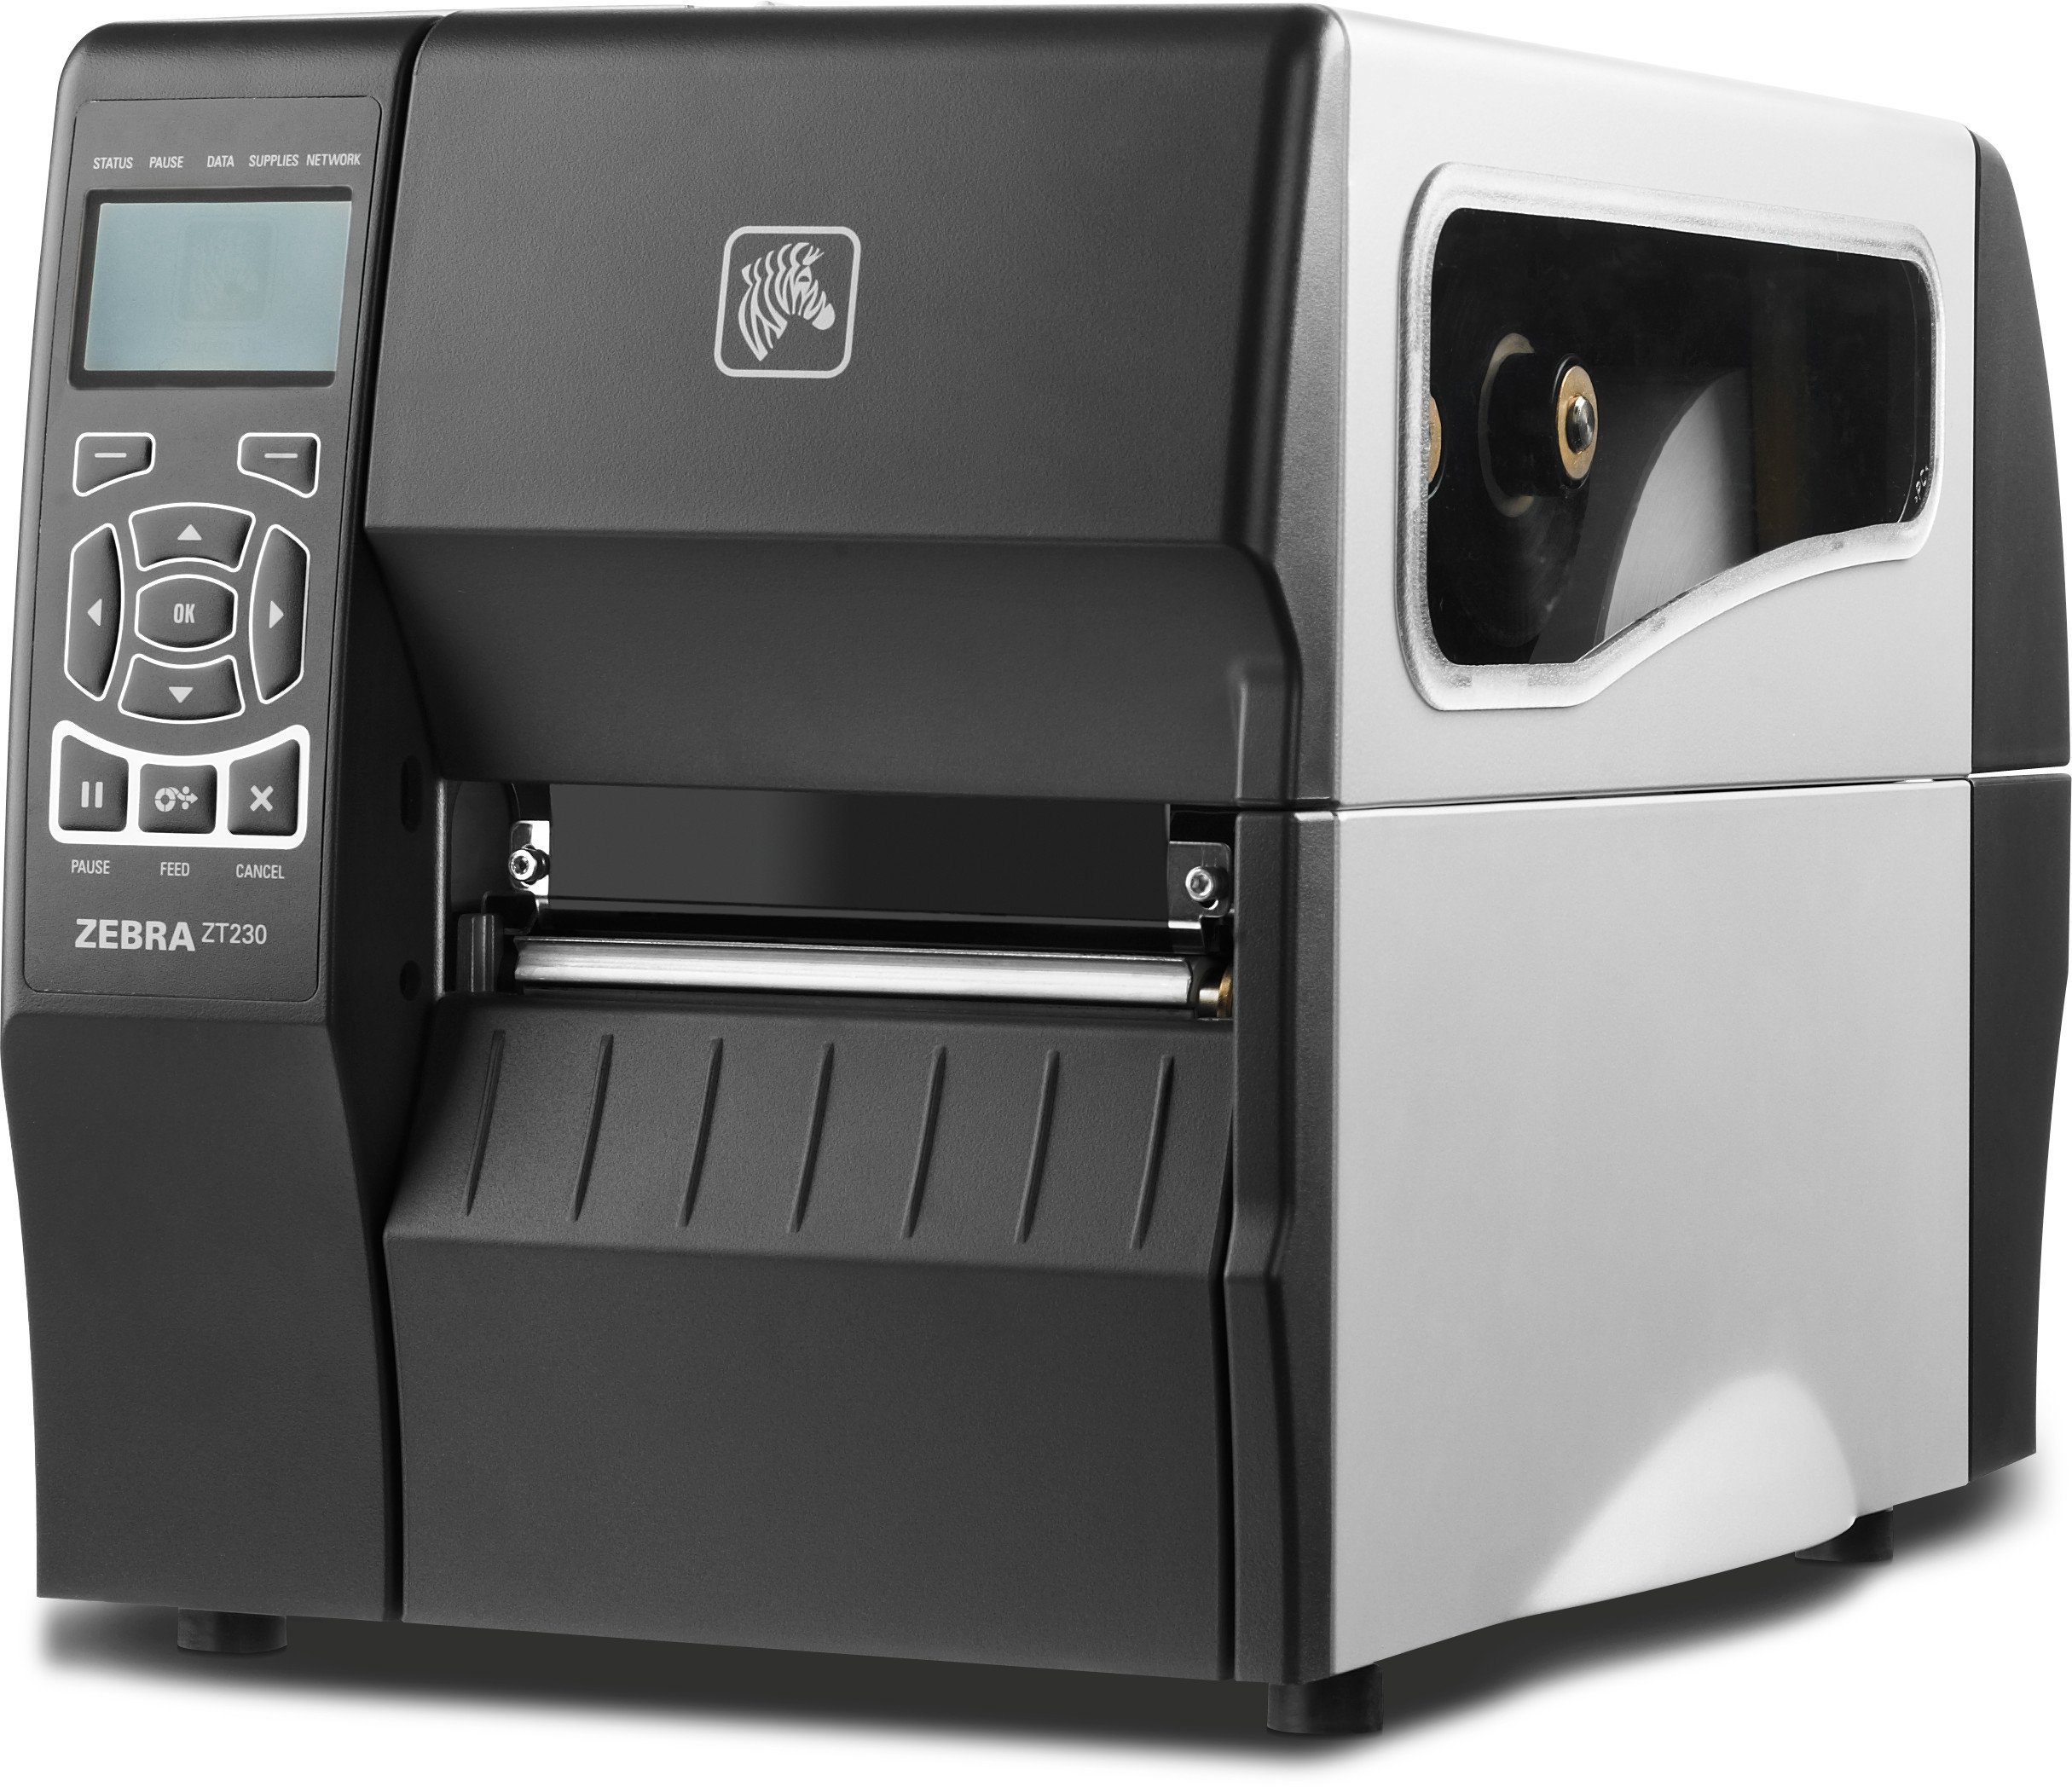 Zebra Zt230 Industrial Label Printer Xperts For Computer